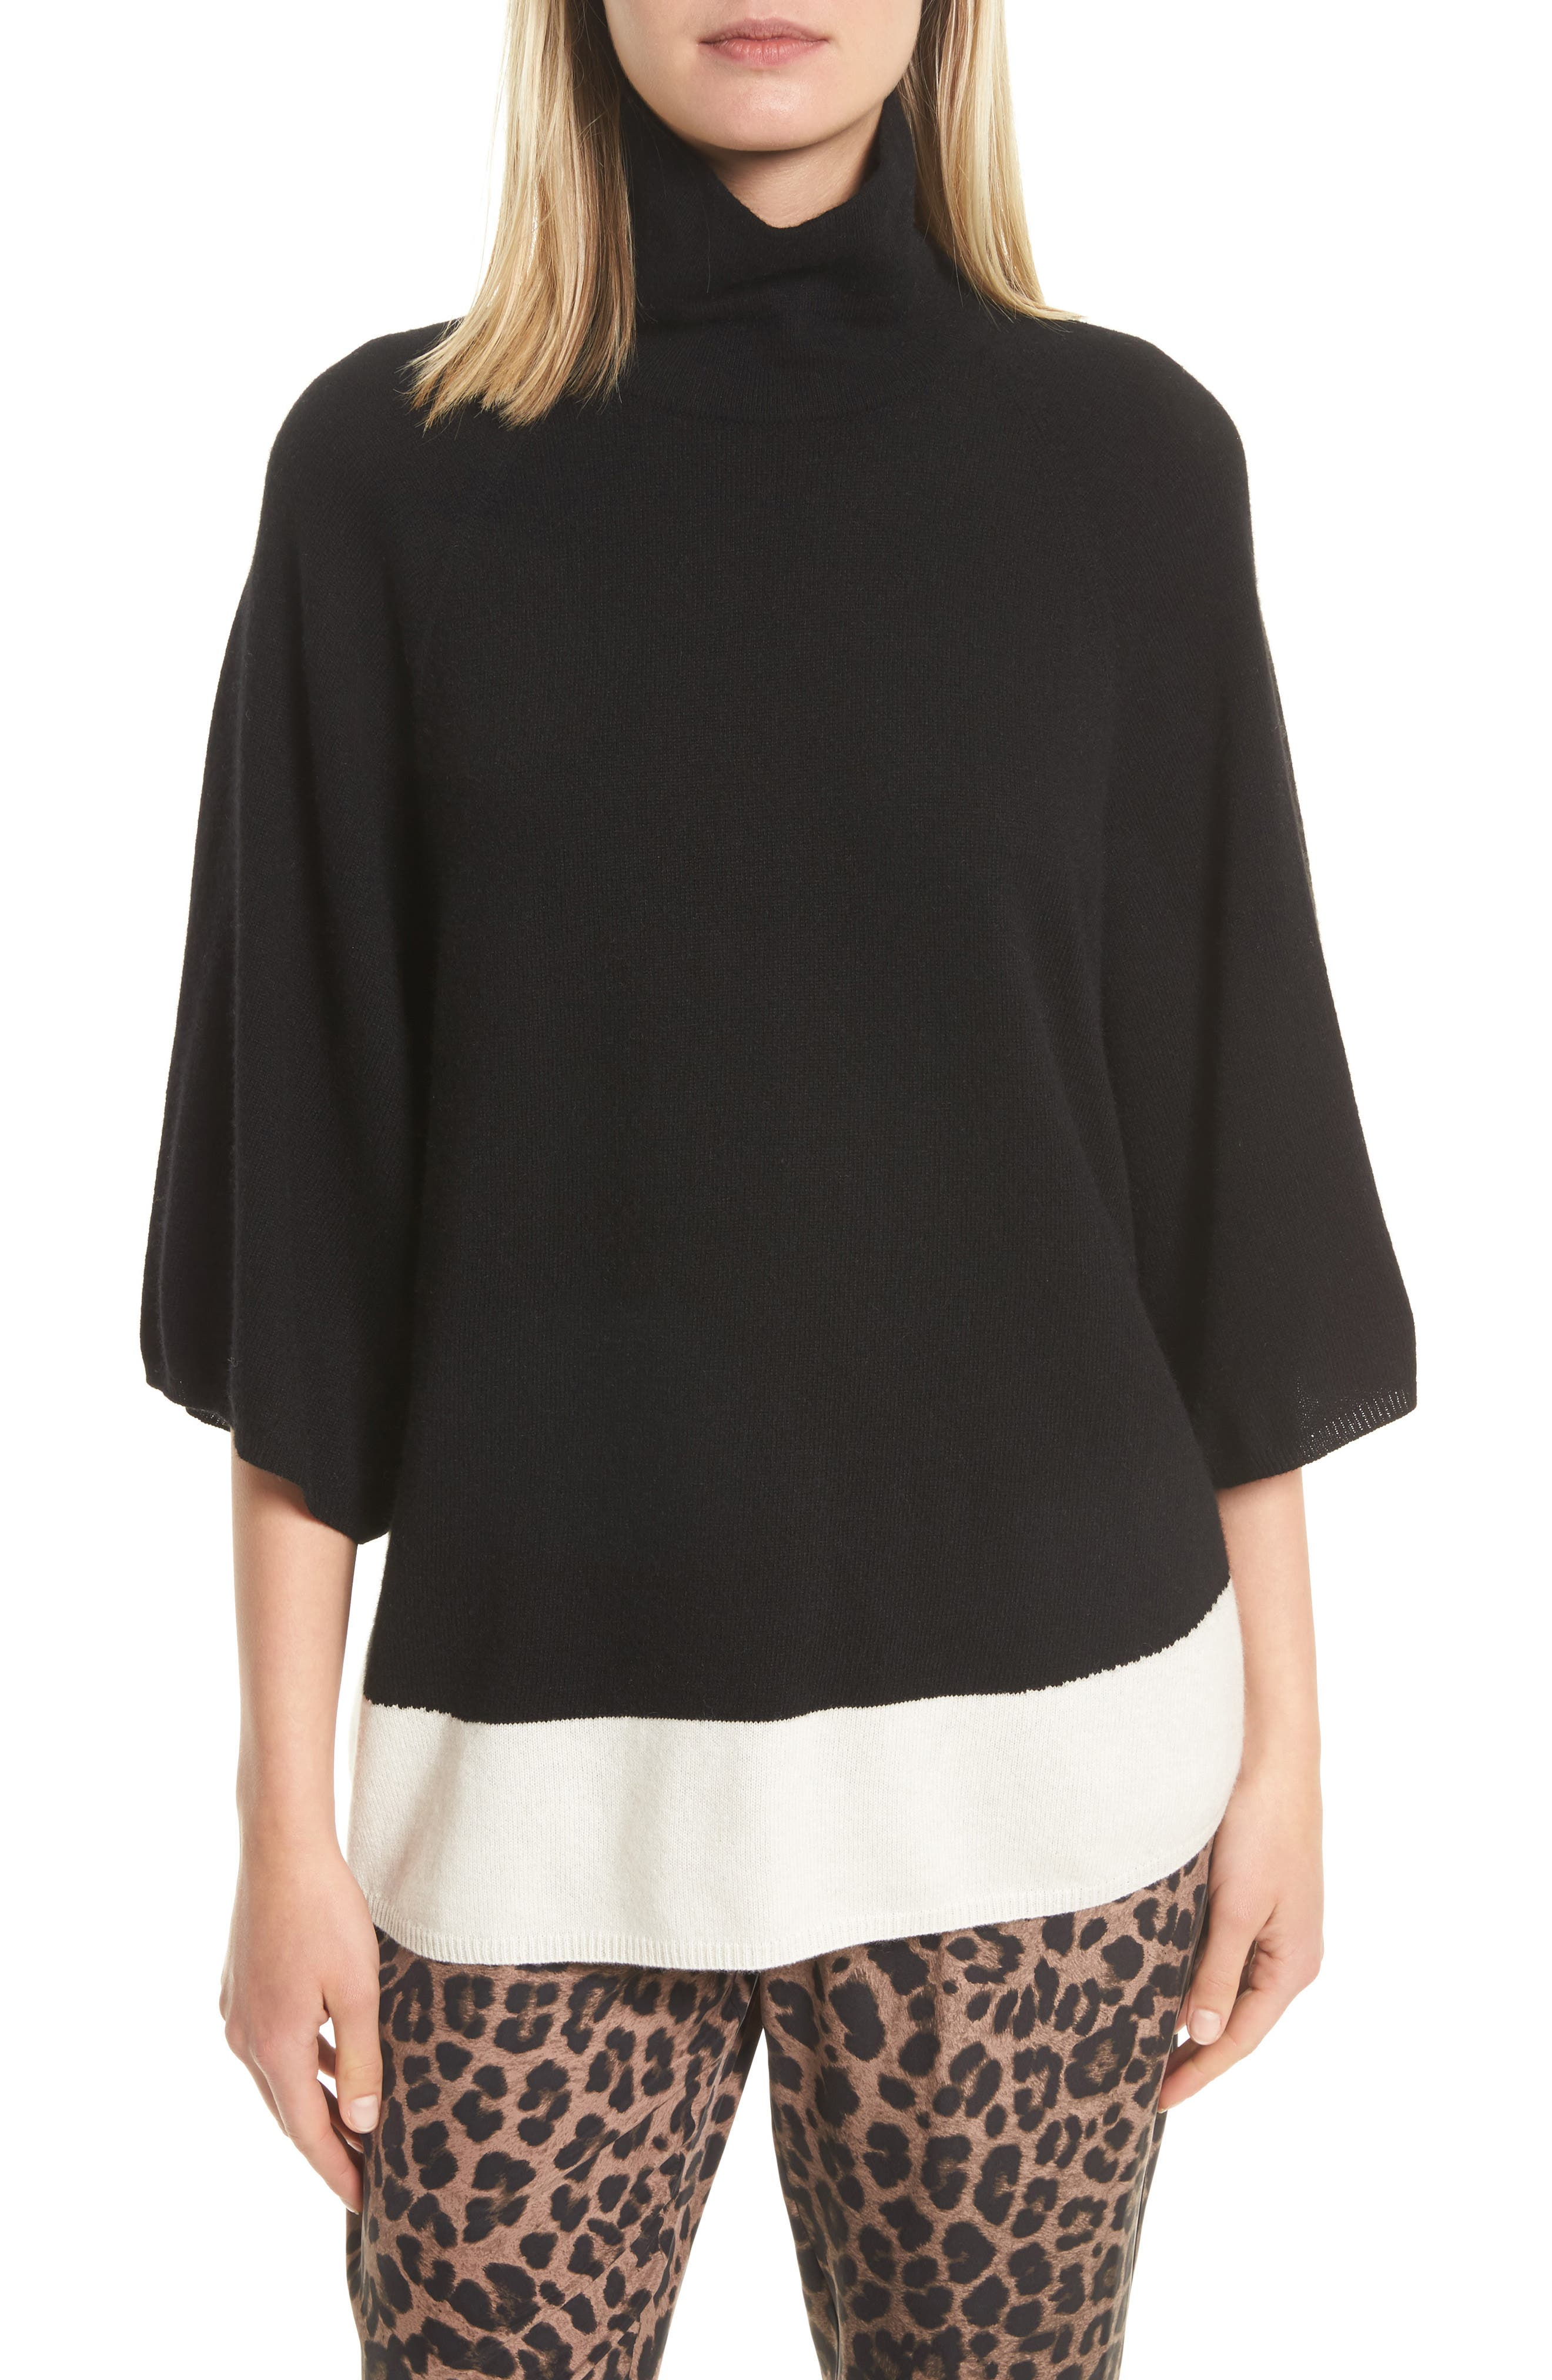 Celia G Wool & Cashmere Sweater,                         Main,                         color, Caviar / Porcelain